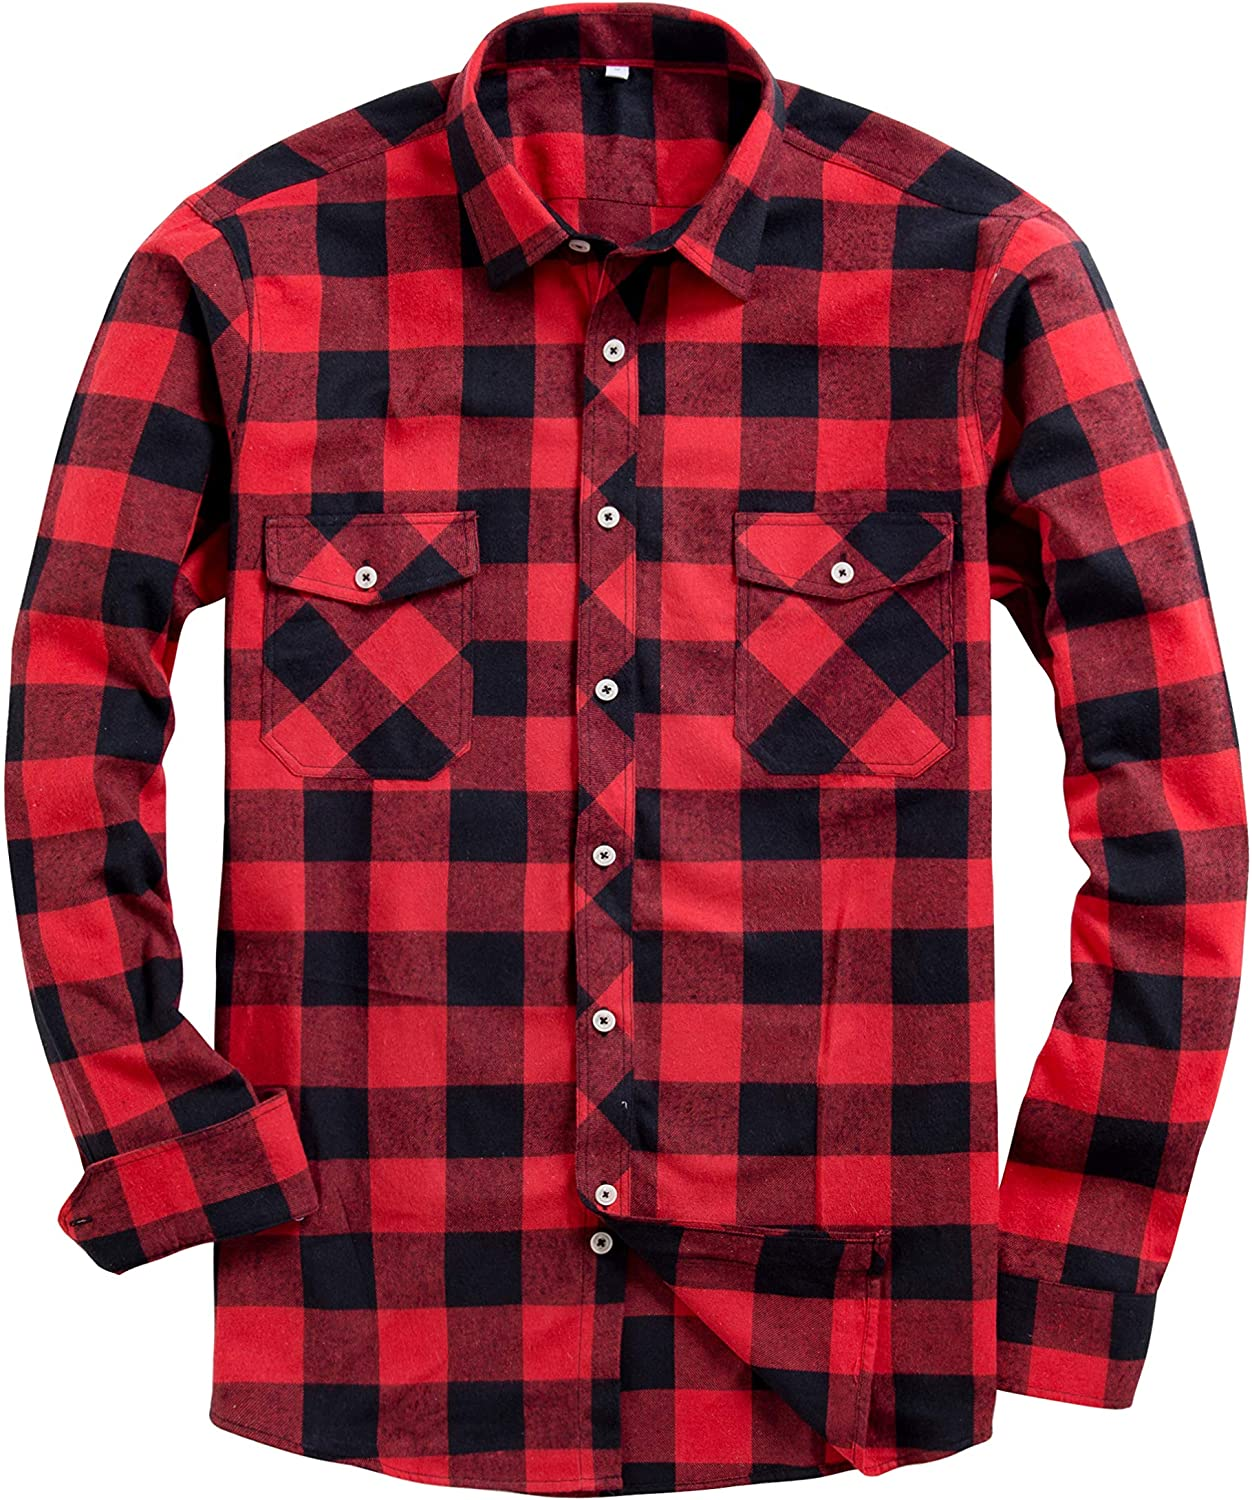 Alimens & Gentle Men's Button Down Regular Fit Long Sleeve Plaid Flannel Casual Shirts: Clothing